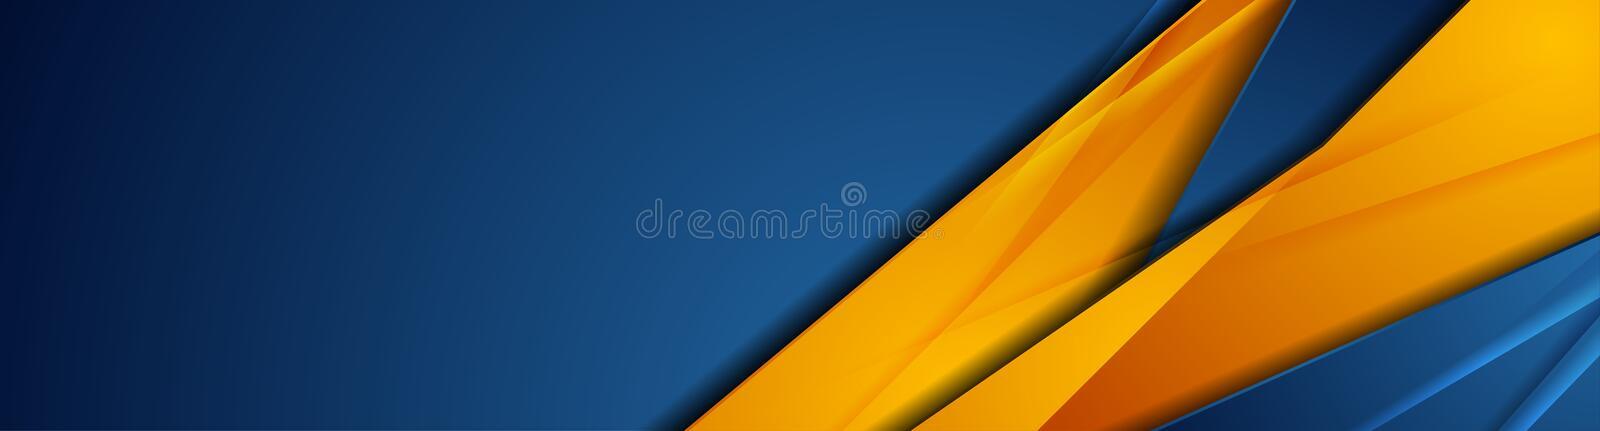 High contrast blue orange abstract tech corporate banner design. High contrast blue and orange glossy stripes. Abstract tech graphic banner design. Vector vector illustration